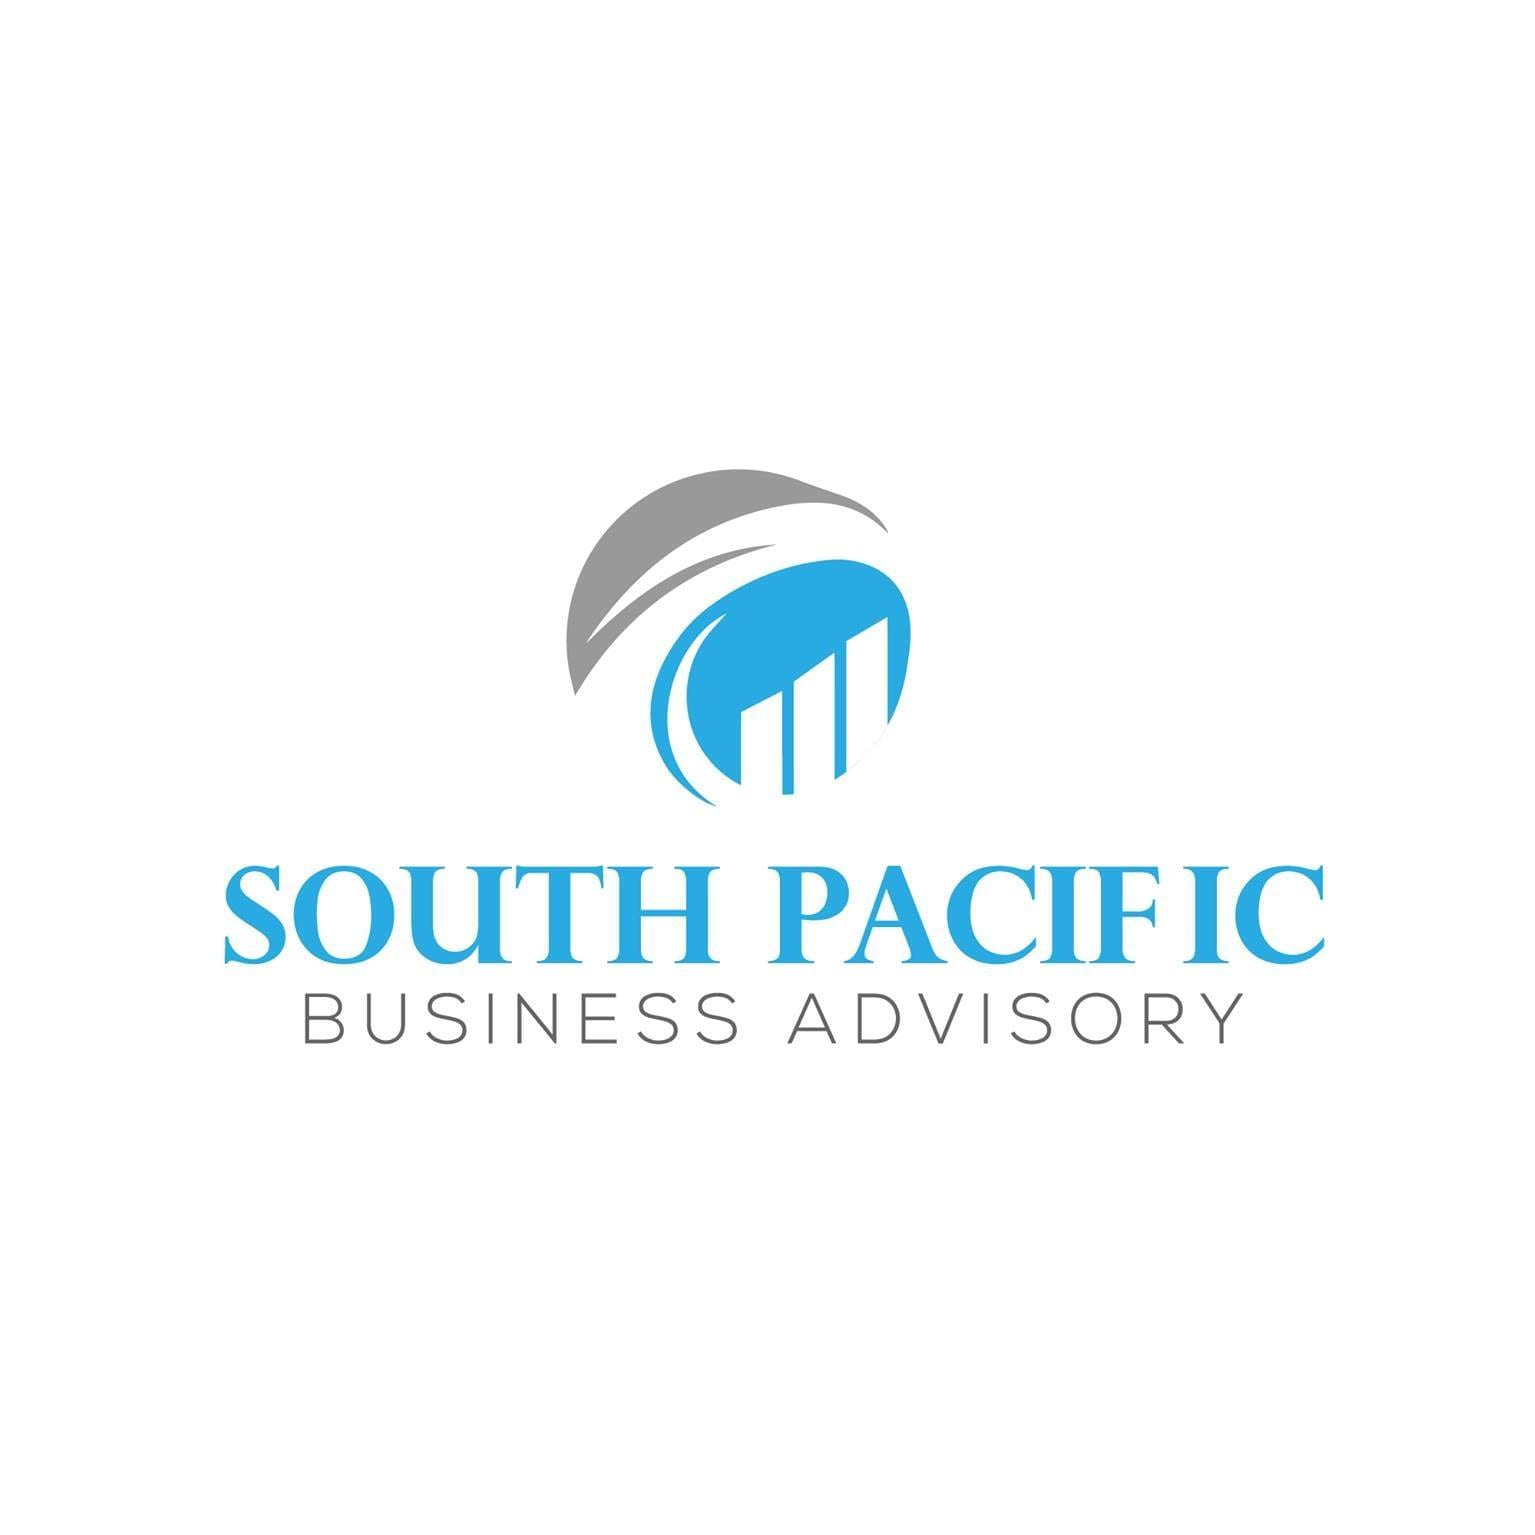 South Pacific Business Advisory